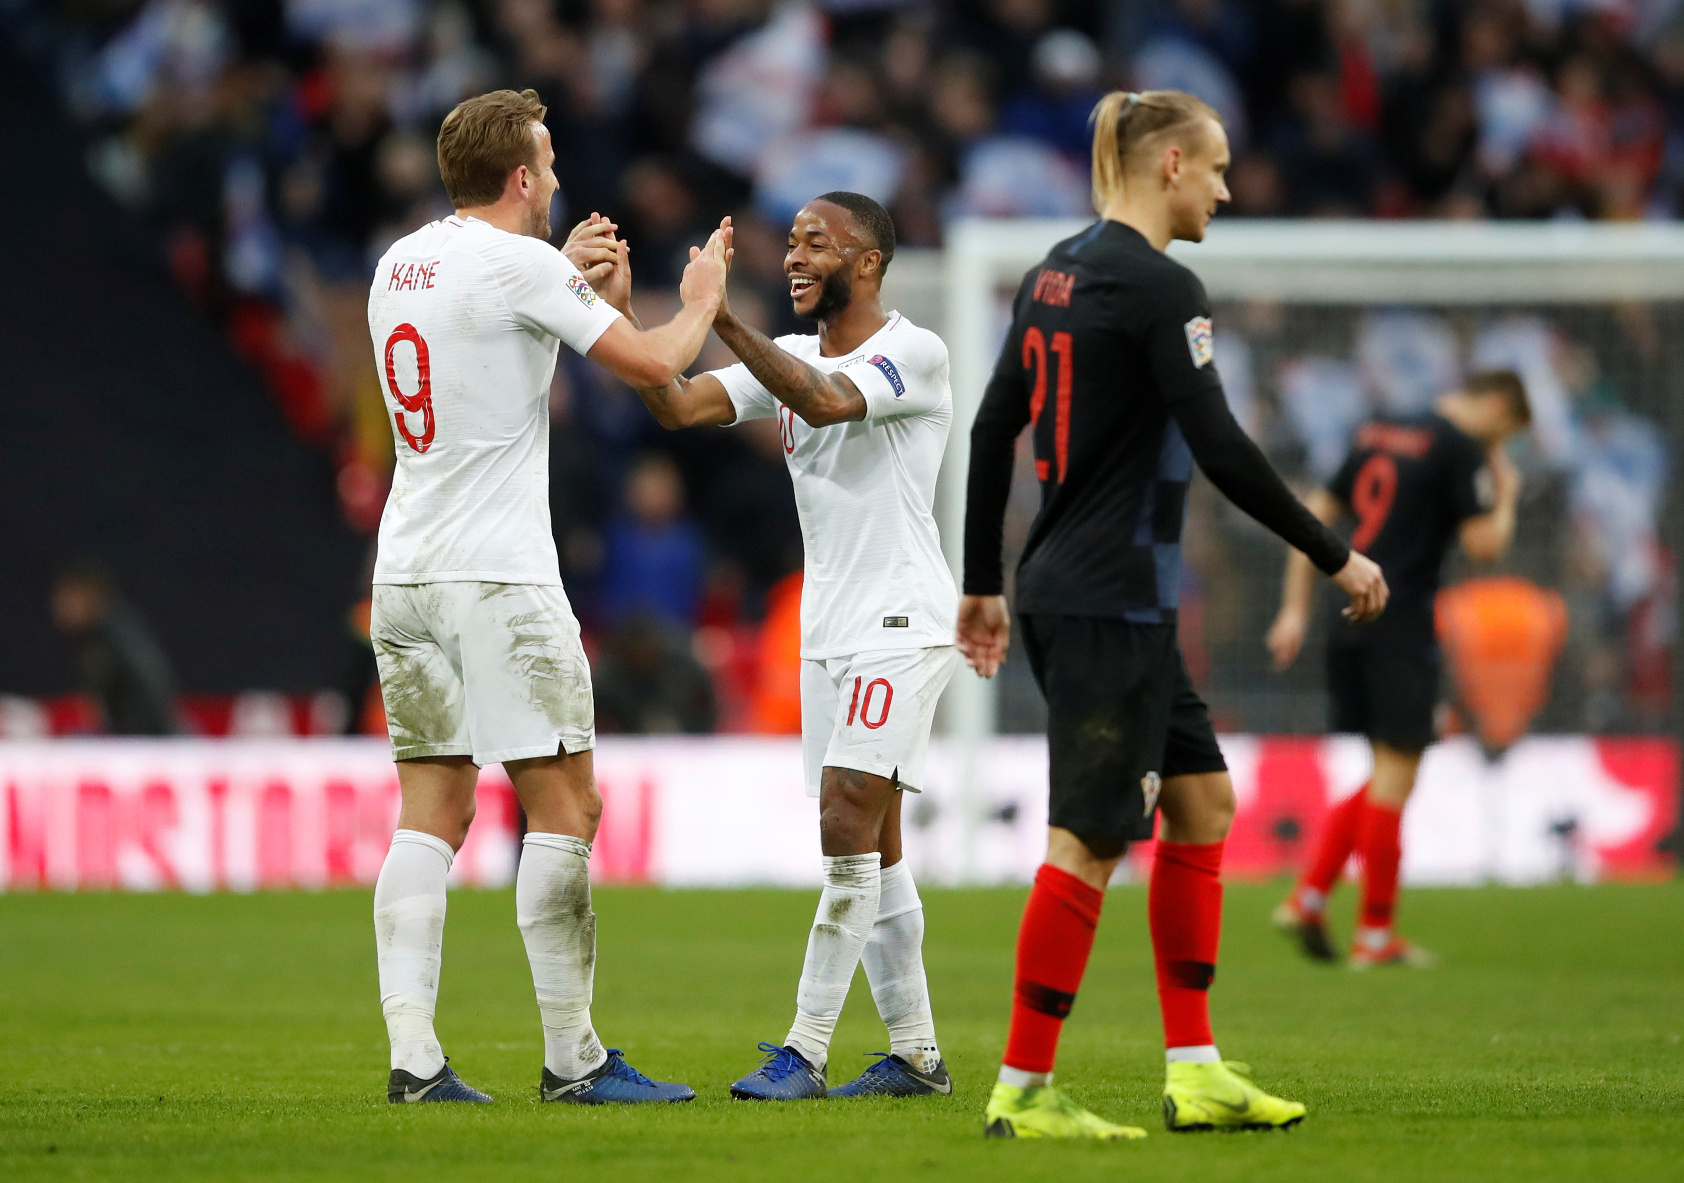 Soccer Football - UEFA Nations League - League A - Group 4 - England v Croatia - Wembley Stadium, London, Britain - November 18, 2018  England's Harry Kane celebrates after the match with Raheem Sterling         Action Images via Reuters/Carl Recine - RC11BD5EF230